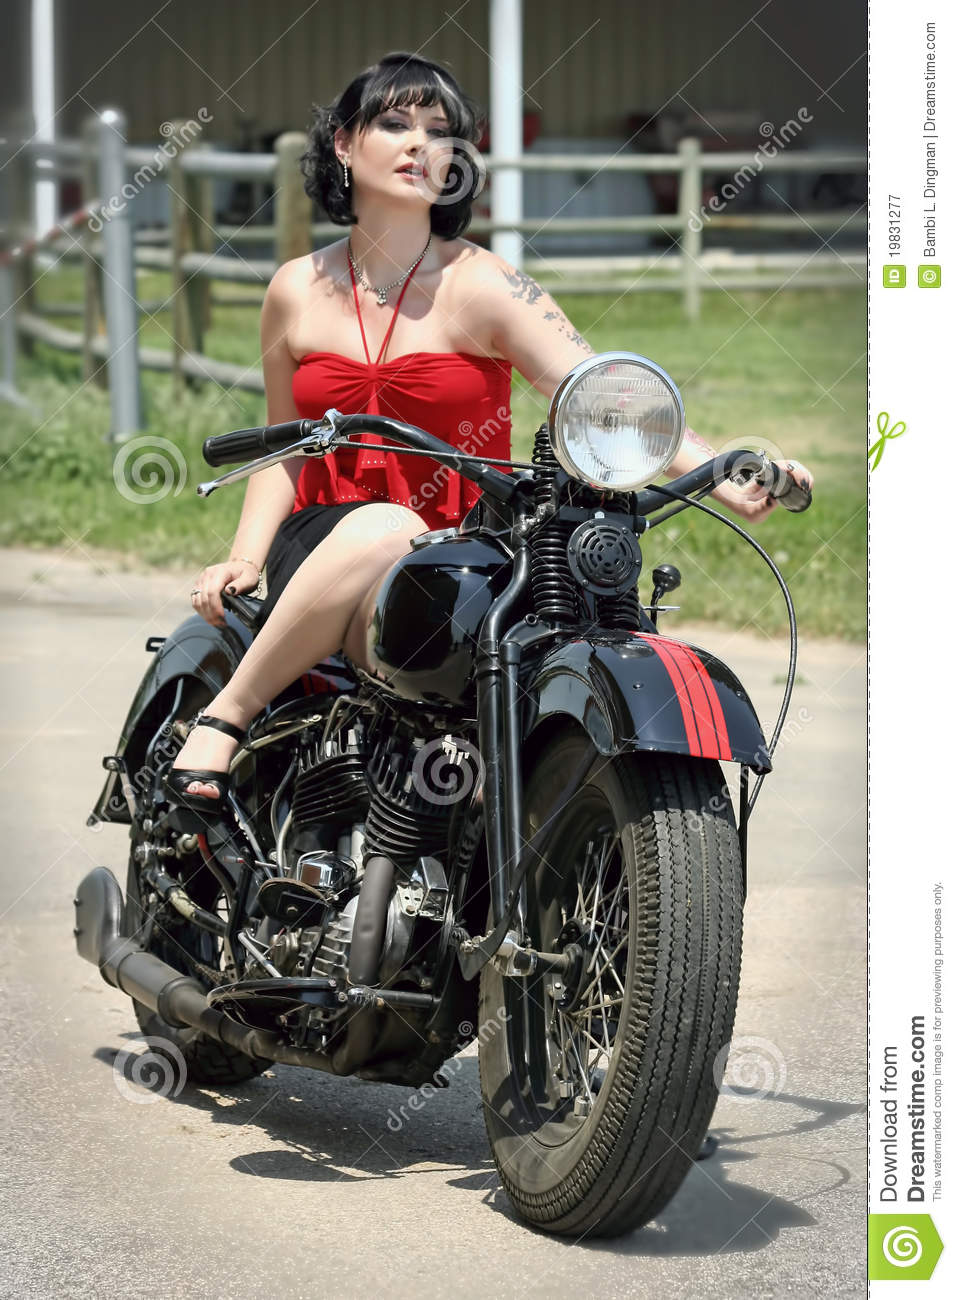 pinup woman and motorcycle stock image image of 1941 19831277